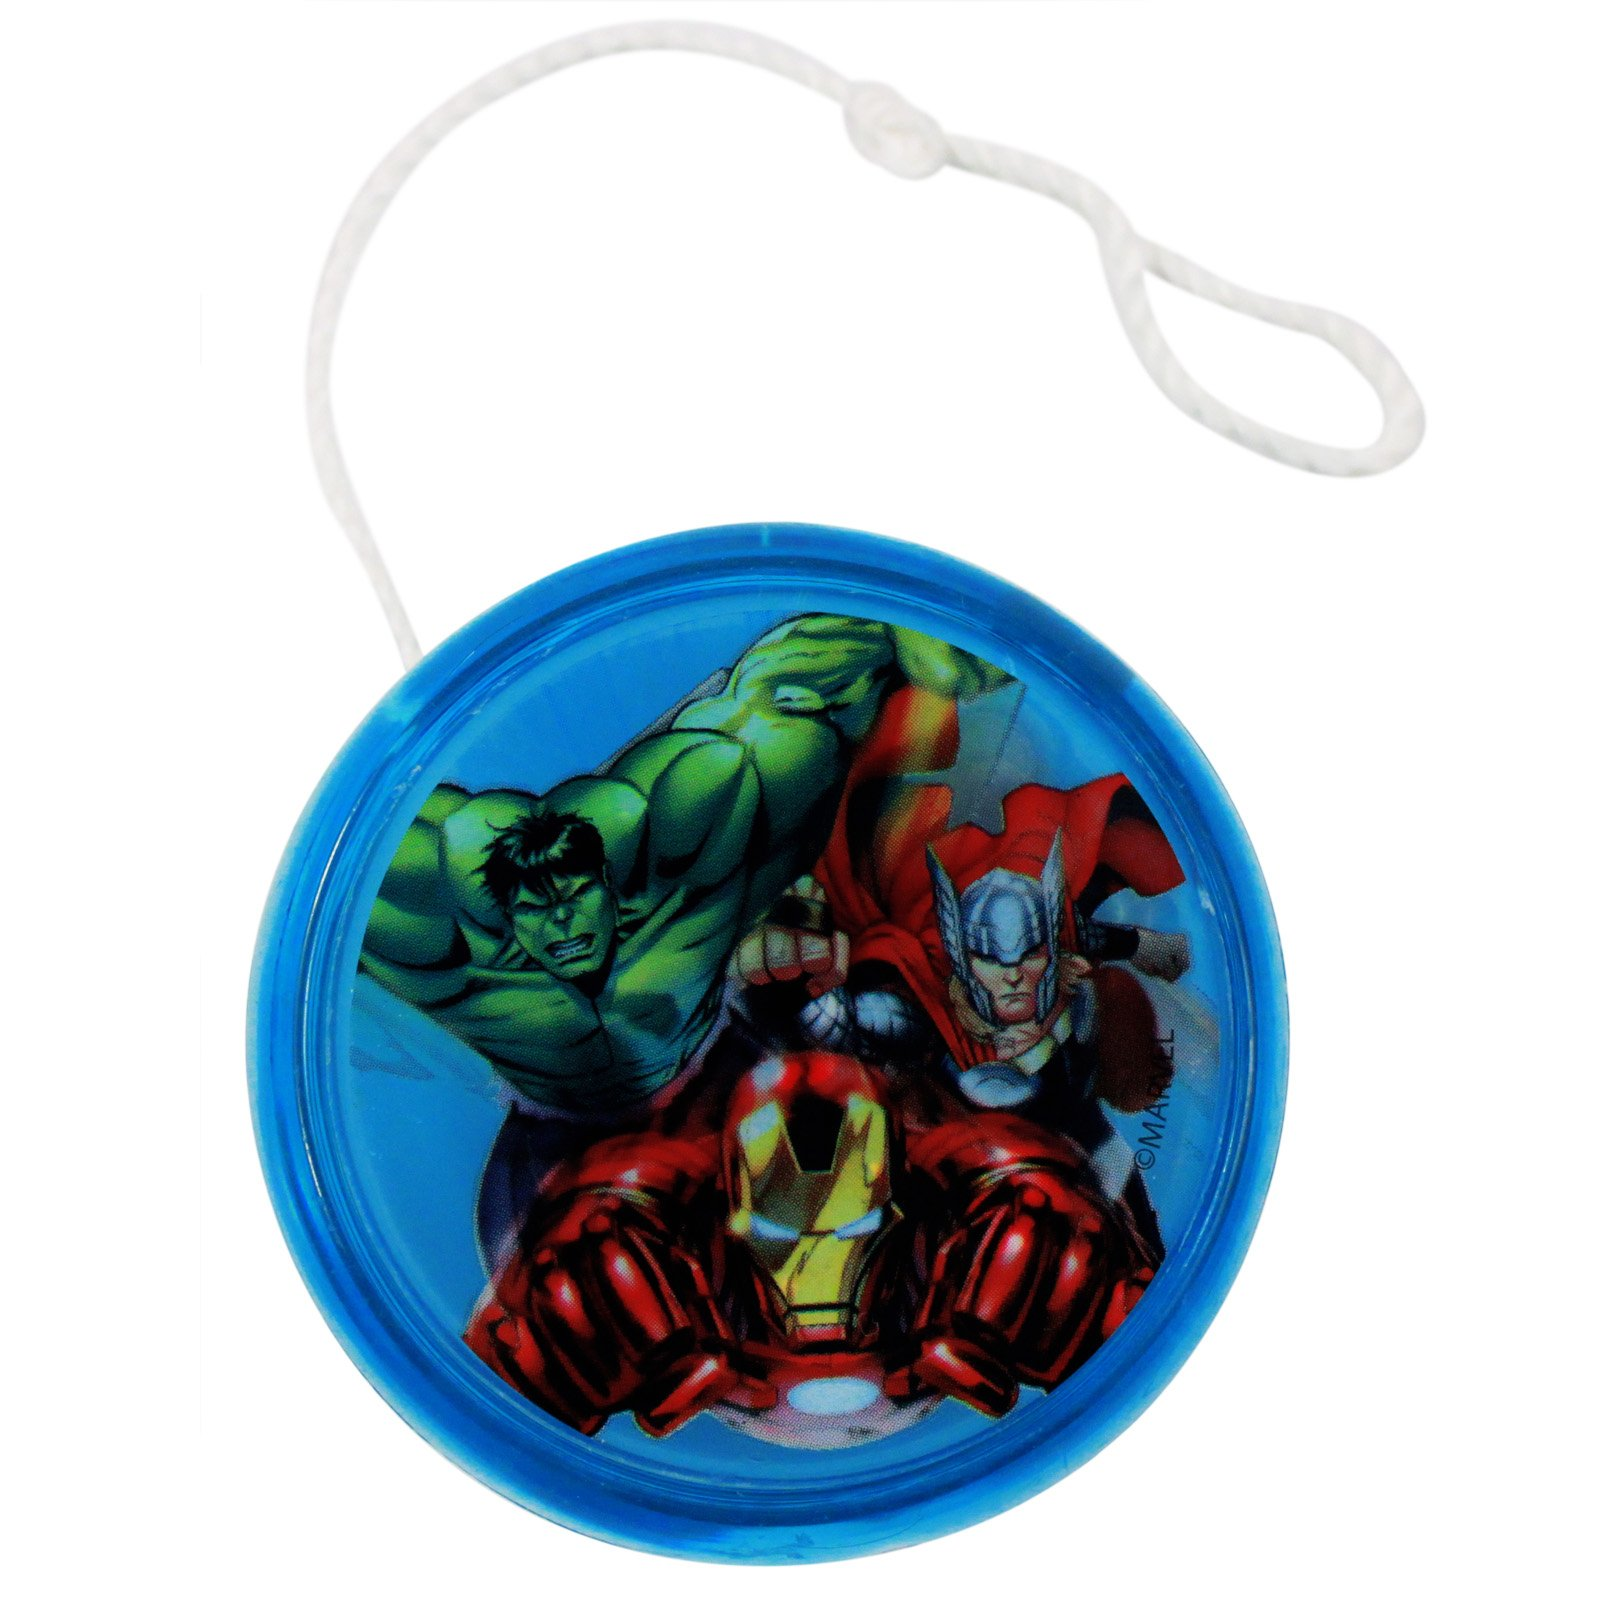 Avengers Light Up LED Yo Yo Featuring Captain Amercia, the Hulk, and the Black Widow